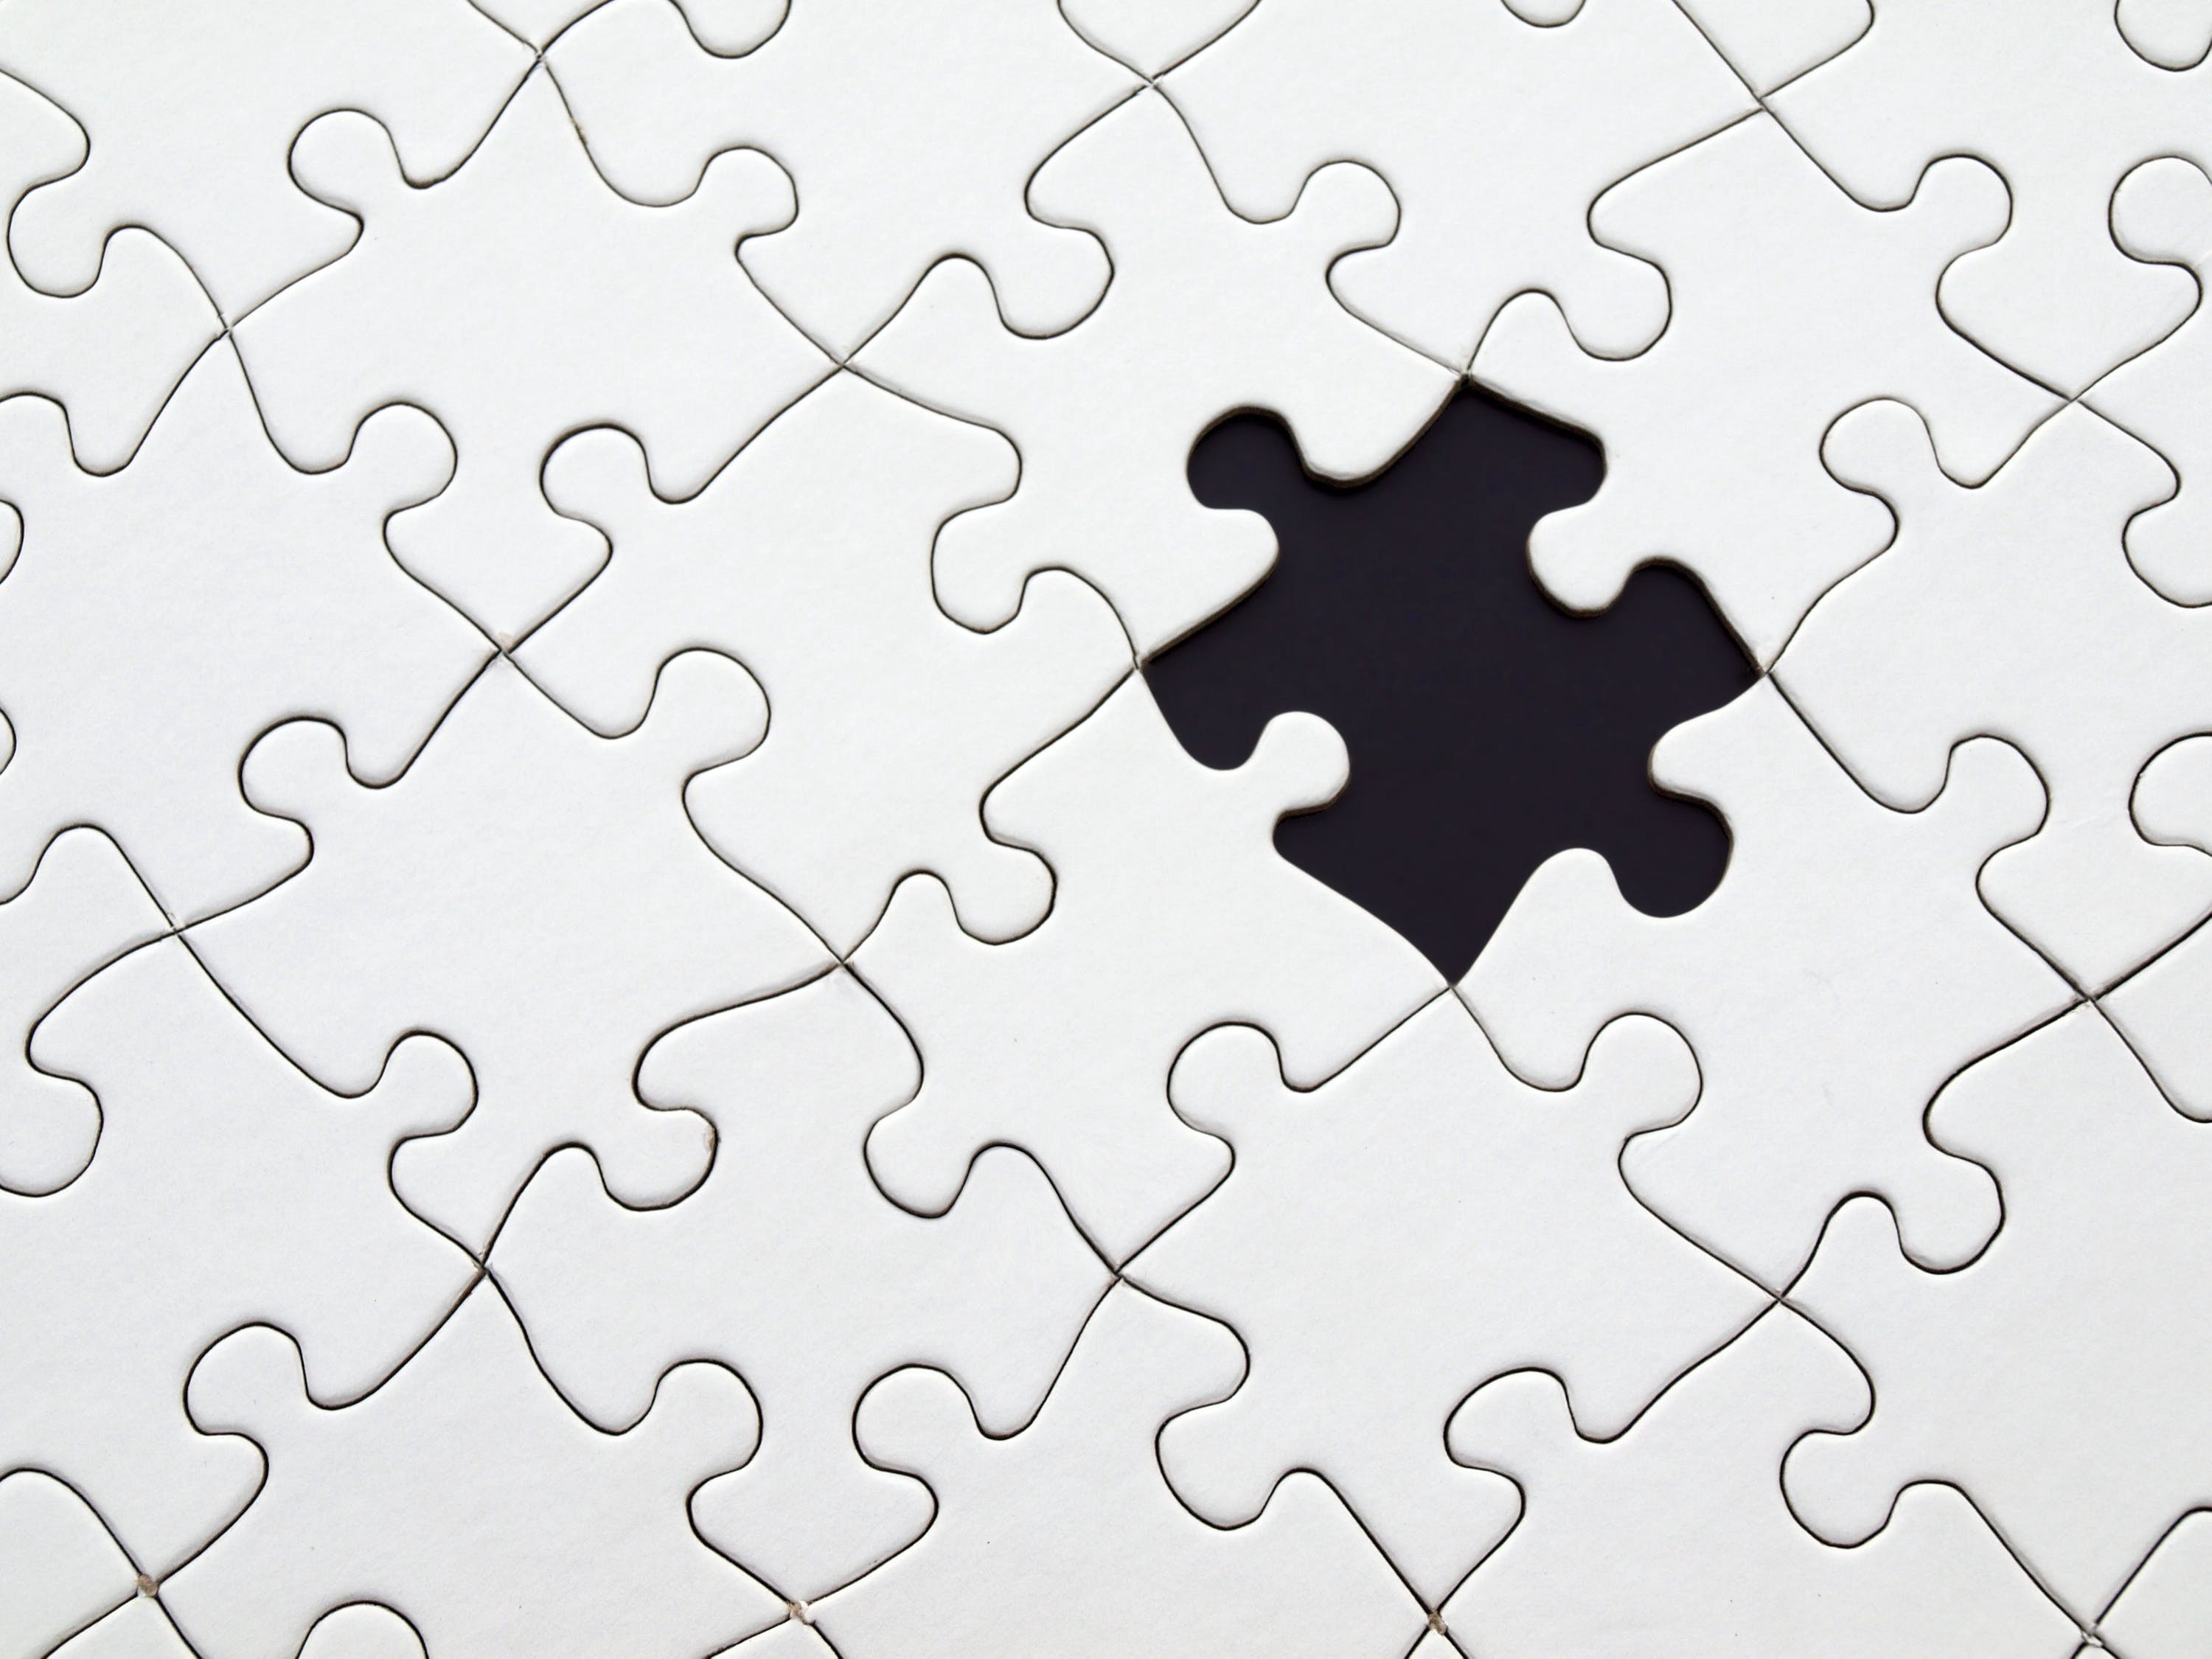 A photo of an all-white jigsaw puzzle with one piece missing, revealing a black background.